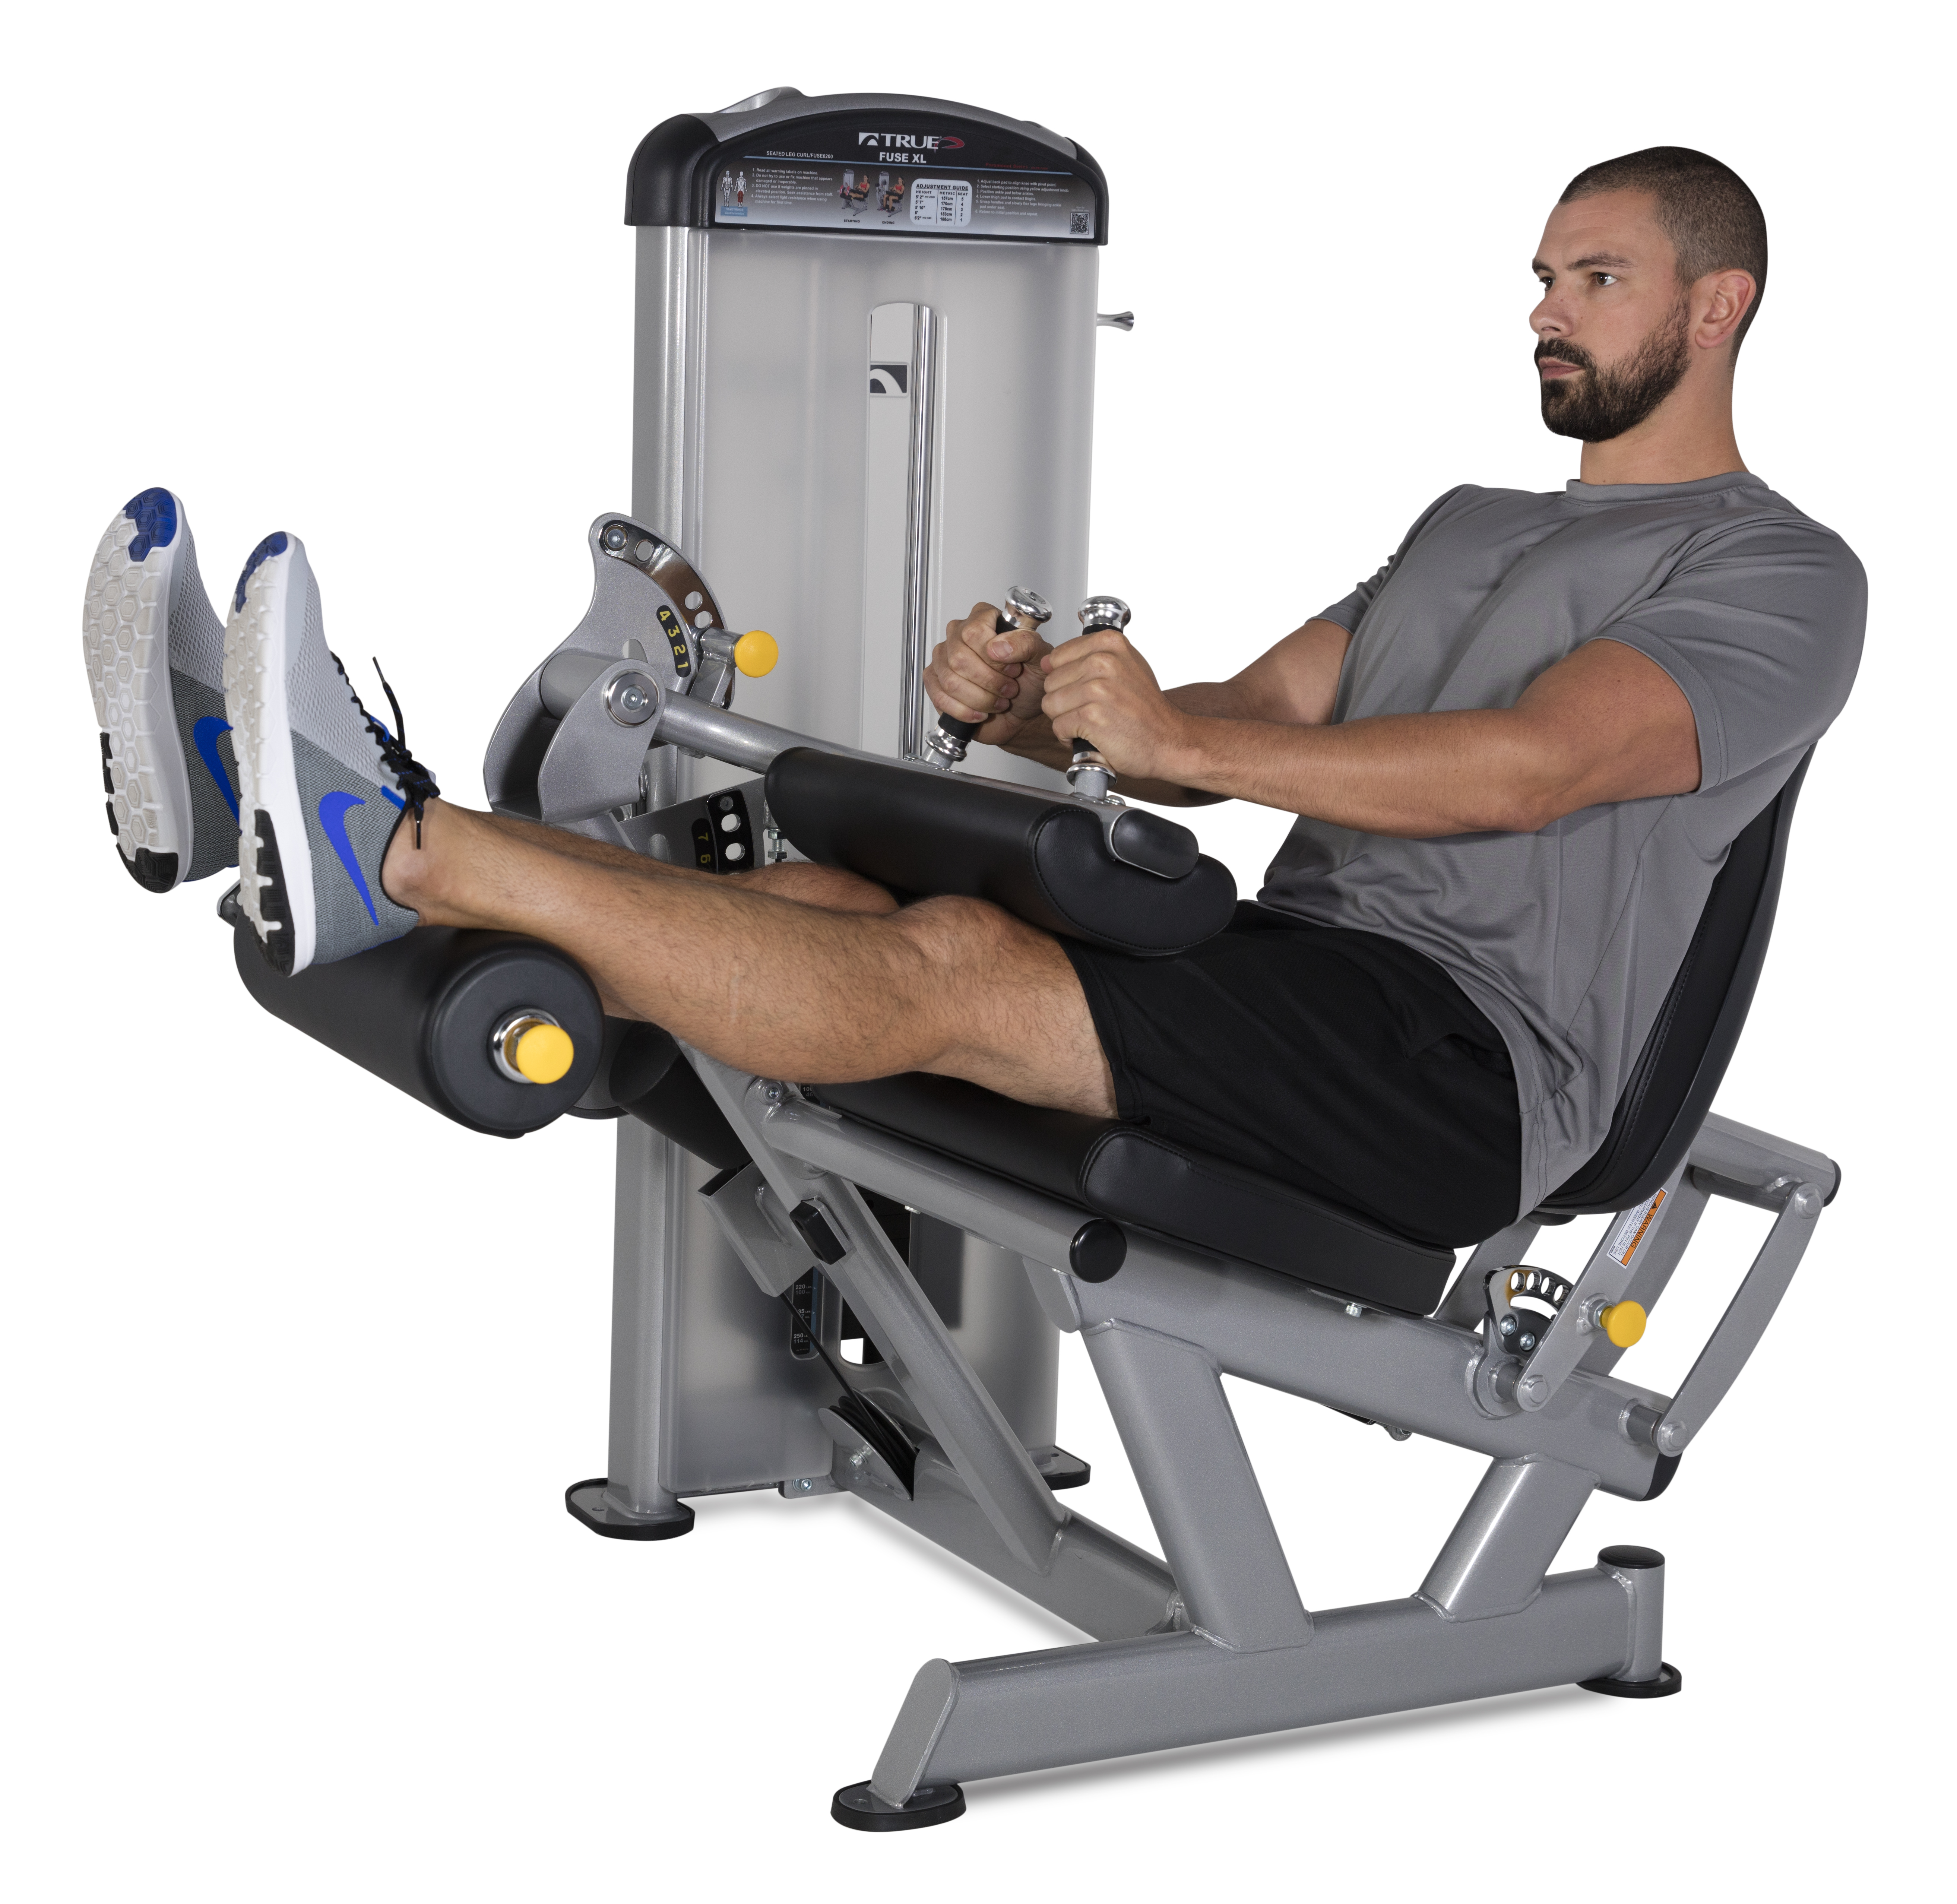 Fitness Equipment Services: Paramount FUSE XL 0200 Seated Leg Curl